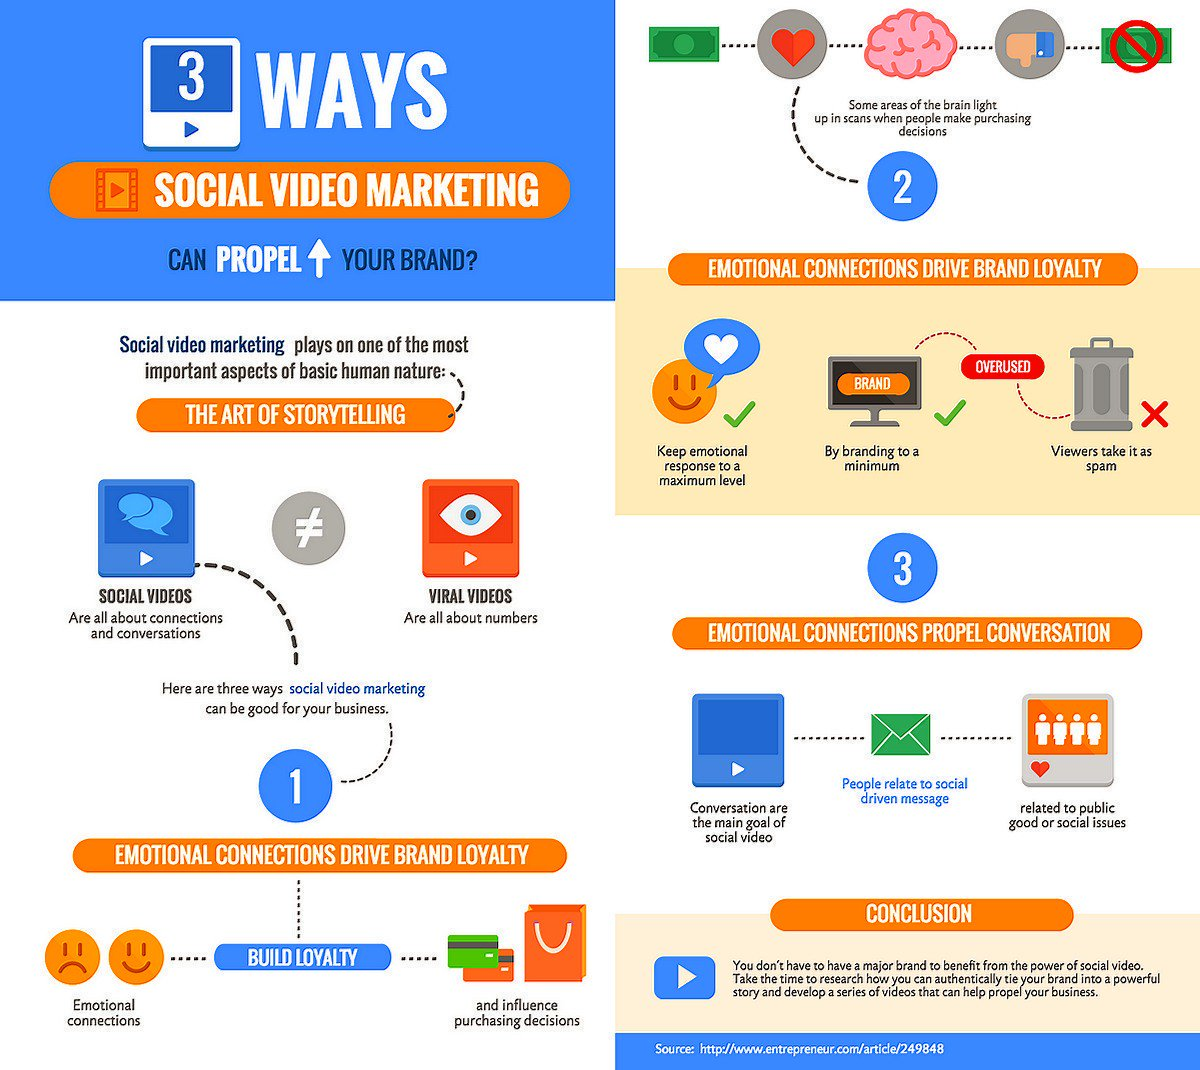 3 Ways Social Video #Marketing Can Propel Your Brand [Infographic]  #VideoMarketing #ContentMarketing #SocialMedia #SMM #GrowthHacking<br>http://pic.twitter.com/IHQqszM7yP